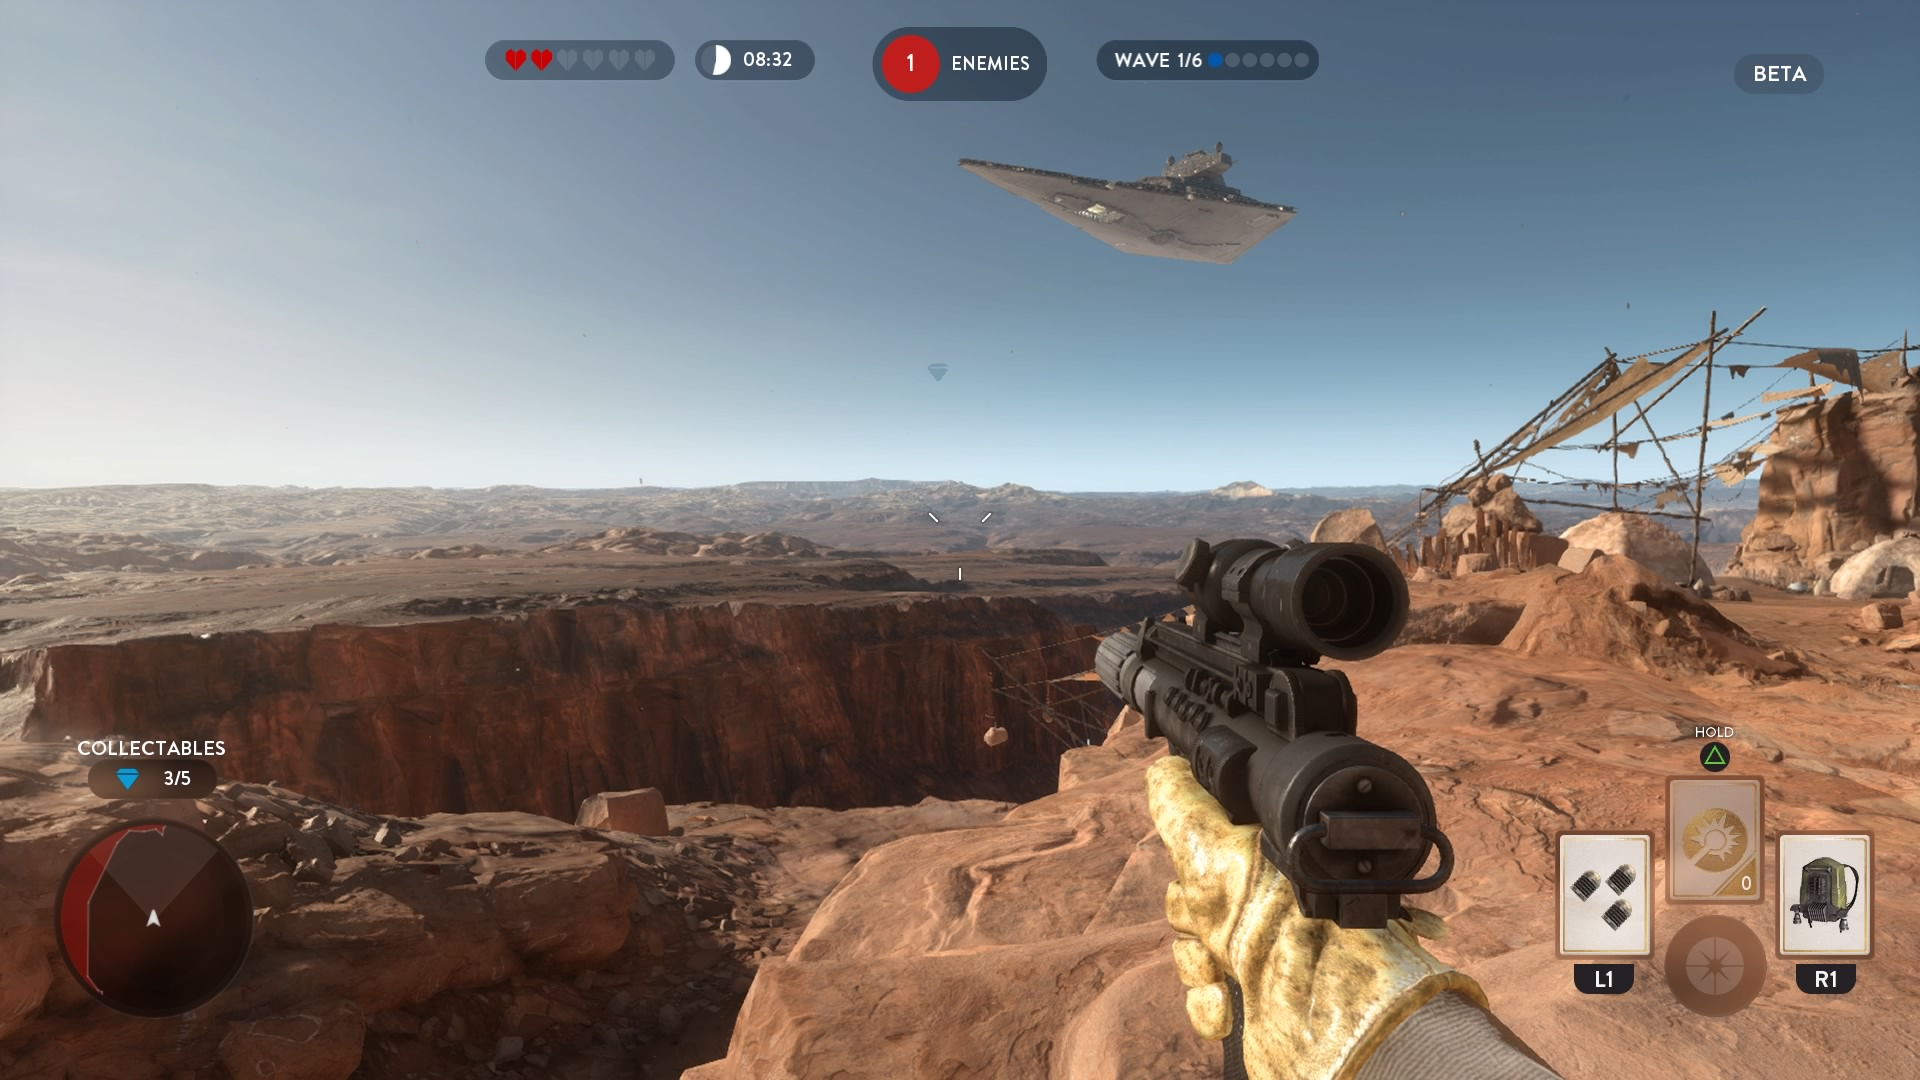 Star Wars Battlefront collectible tatooine diamond guide location where how to find